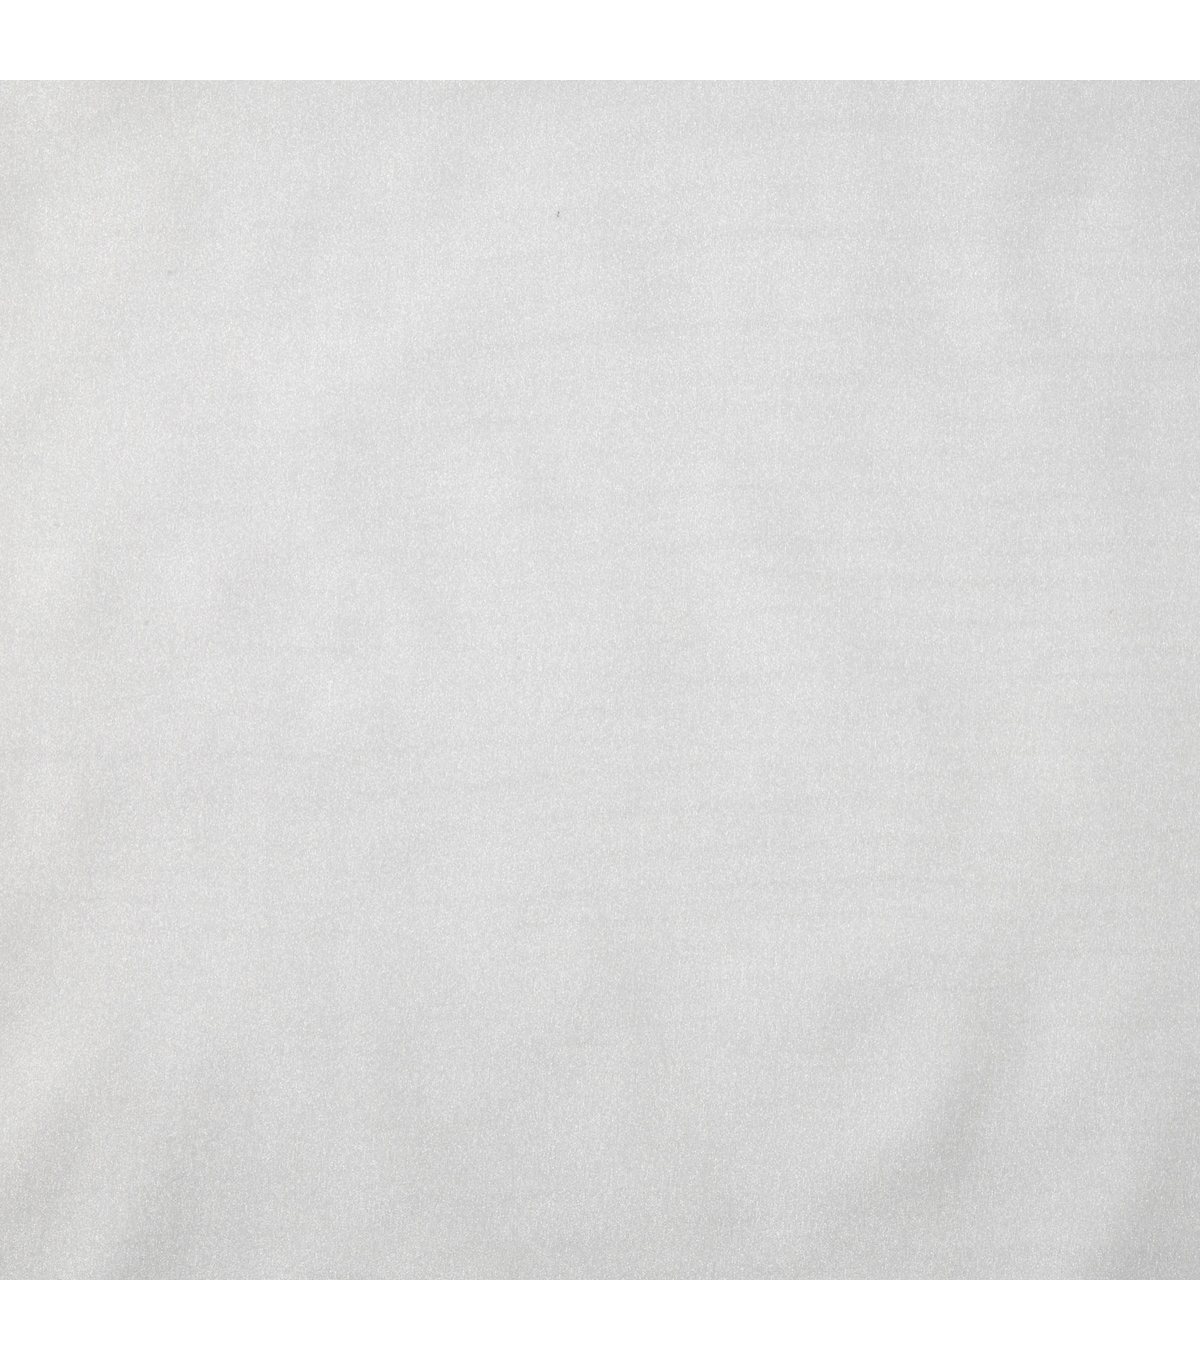 Casa Collection Solid Crepon Sheer Fabric, White